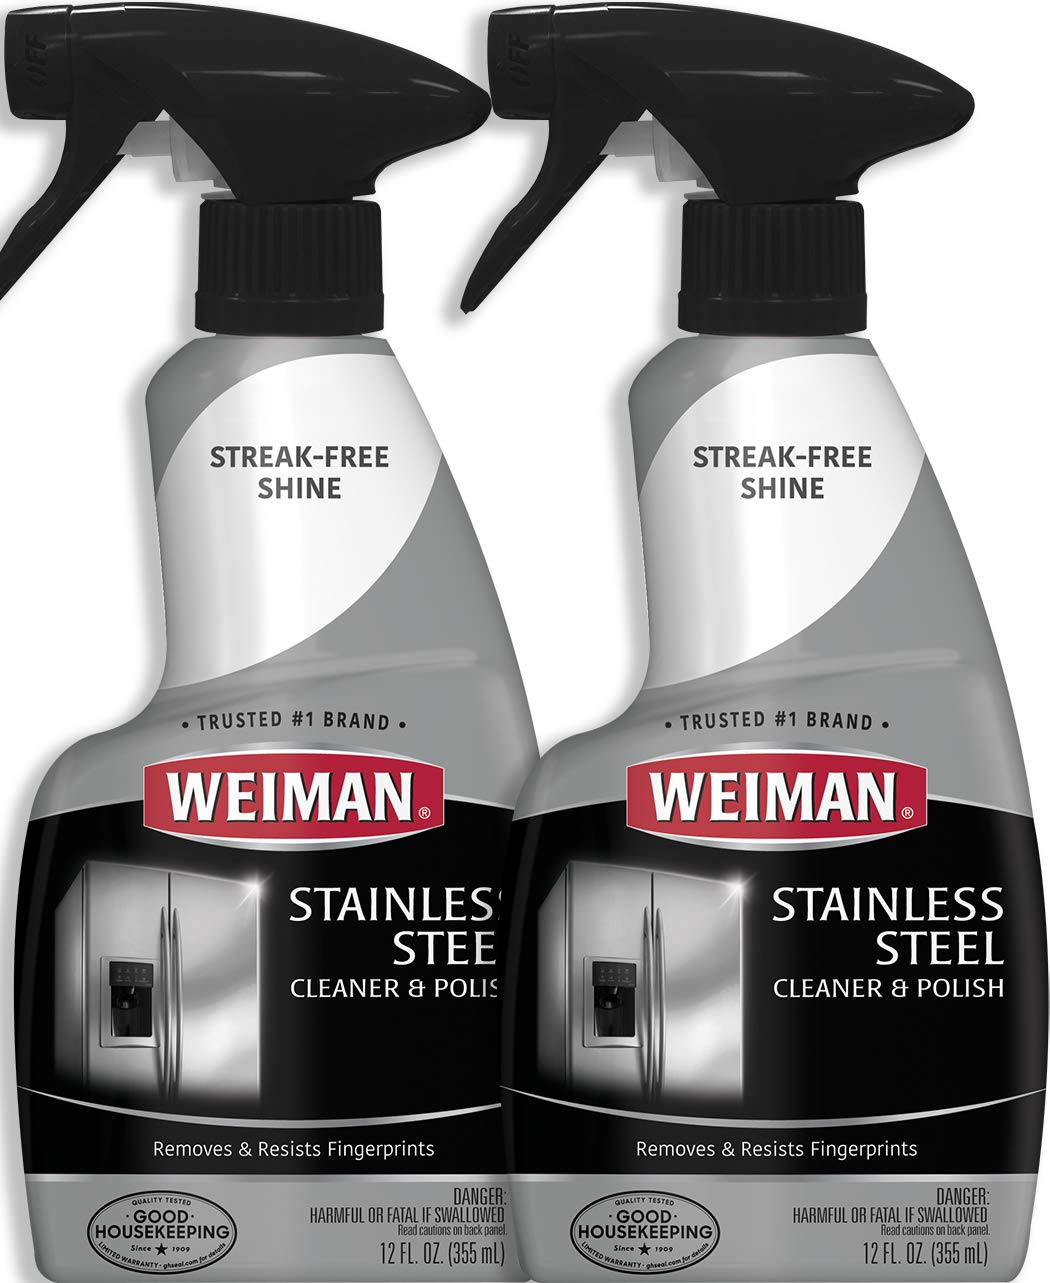 Weiman Stainless Steel Cleaner and Polish - 12 Ounce (2 Pack) - Removes Fingerprints, Residue, Water Marks and Grease from Appliances - Refrigerators Dishwashers Ovens Grills - 24 Ounce Total by Weiman